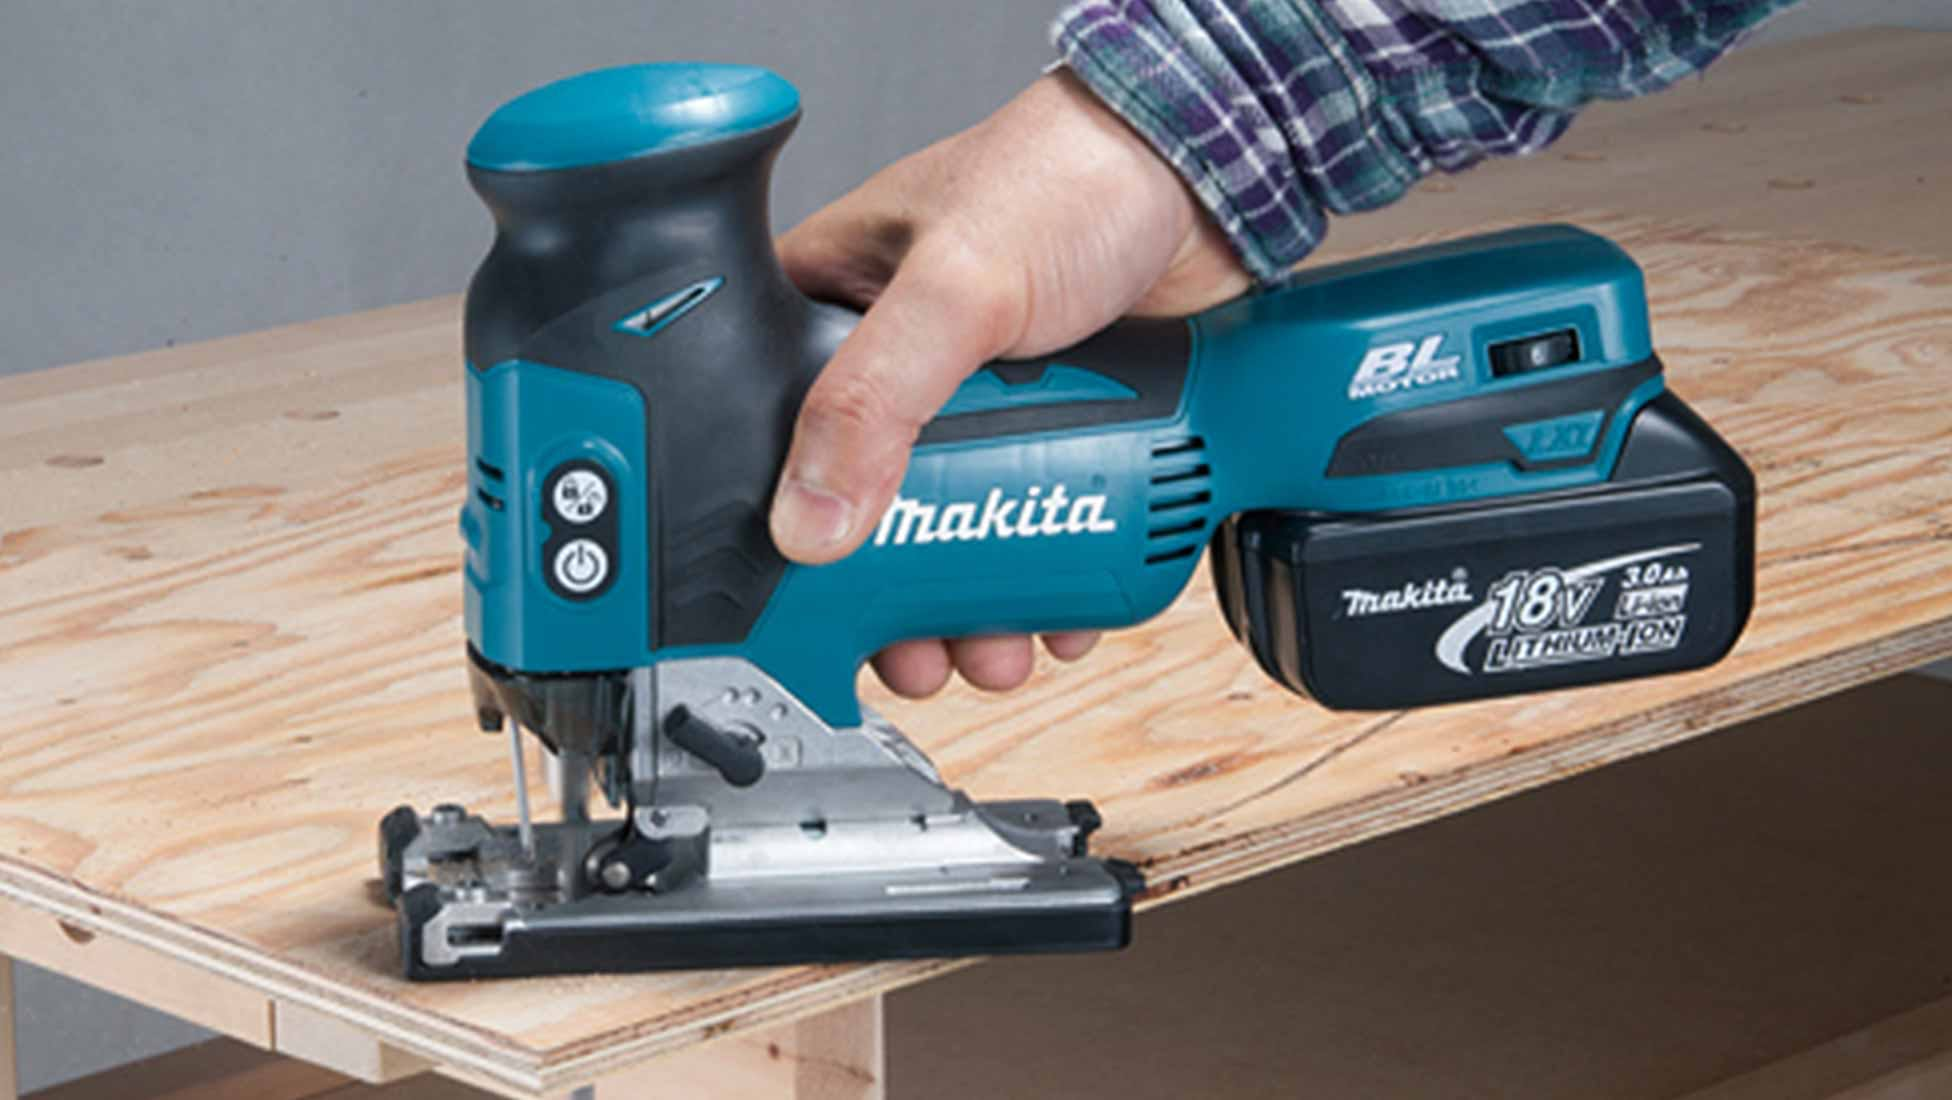 Makita DJV181Z Body Grip Brushless Jigsaw 18V - Body Only